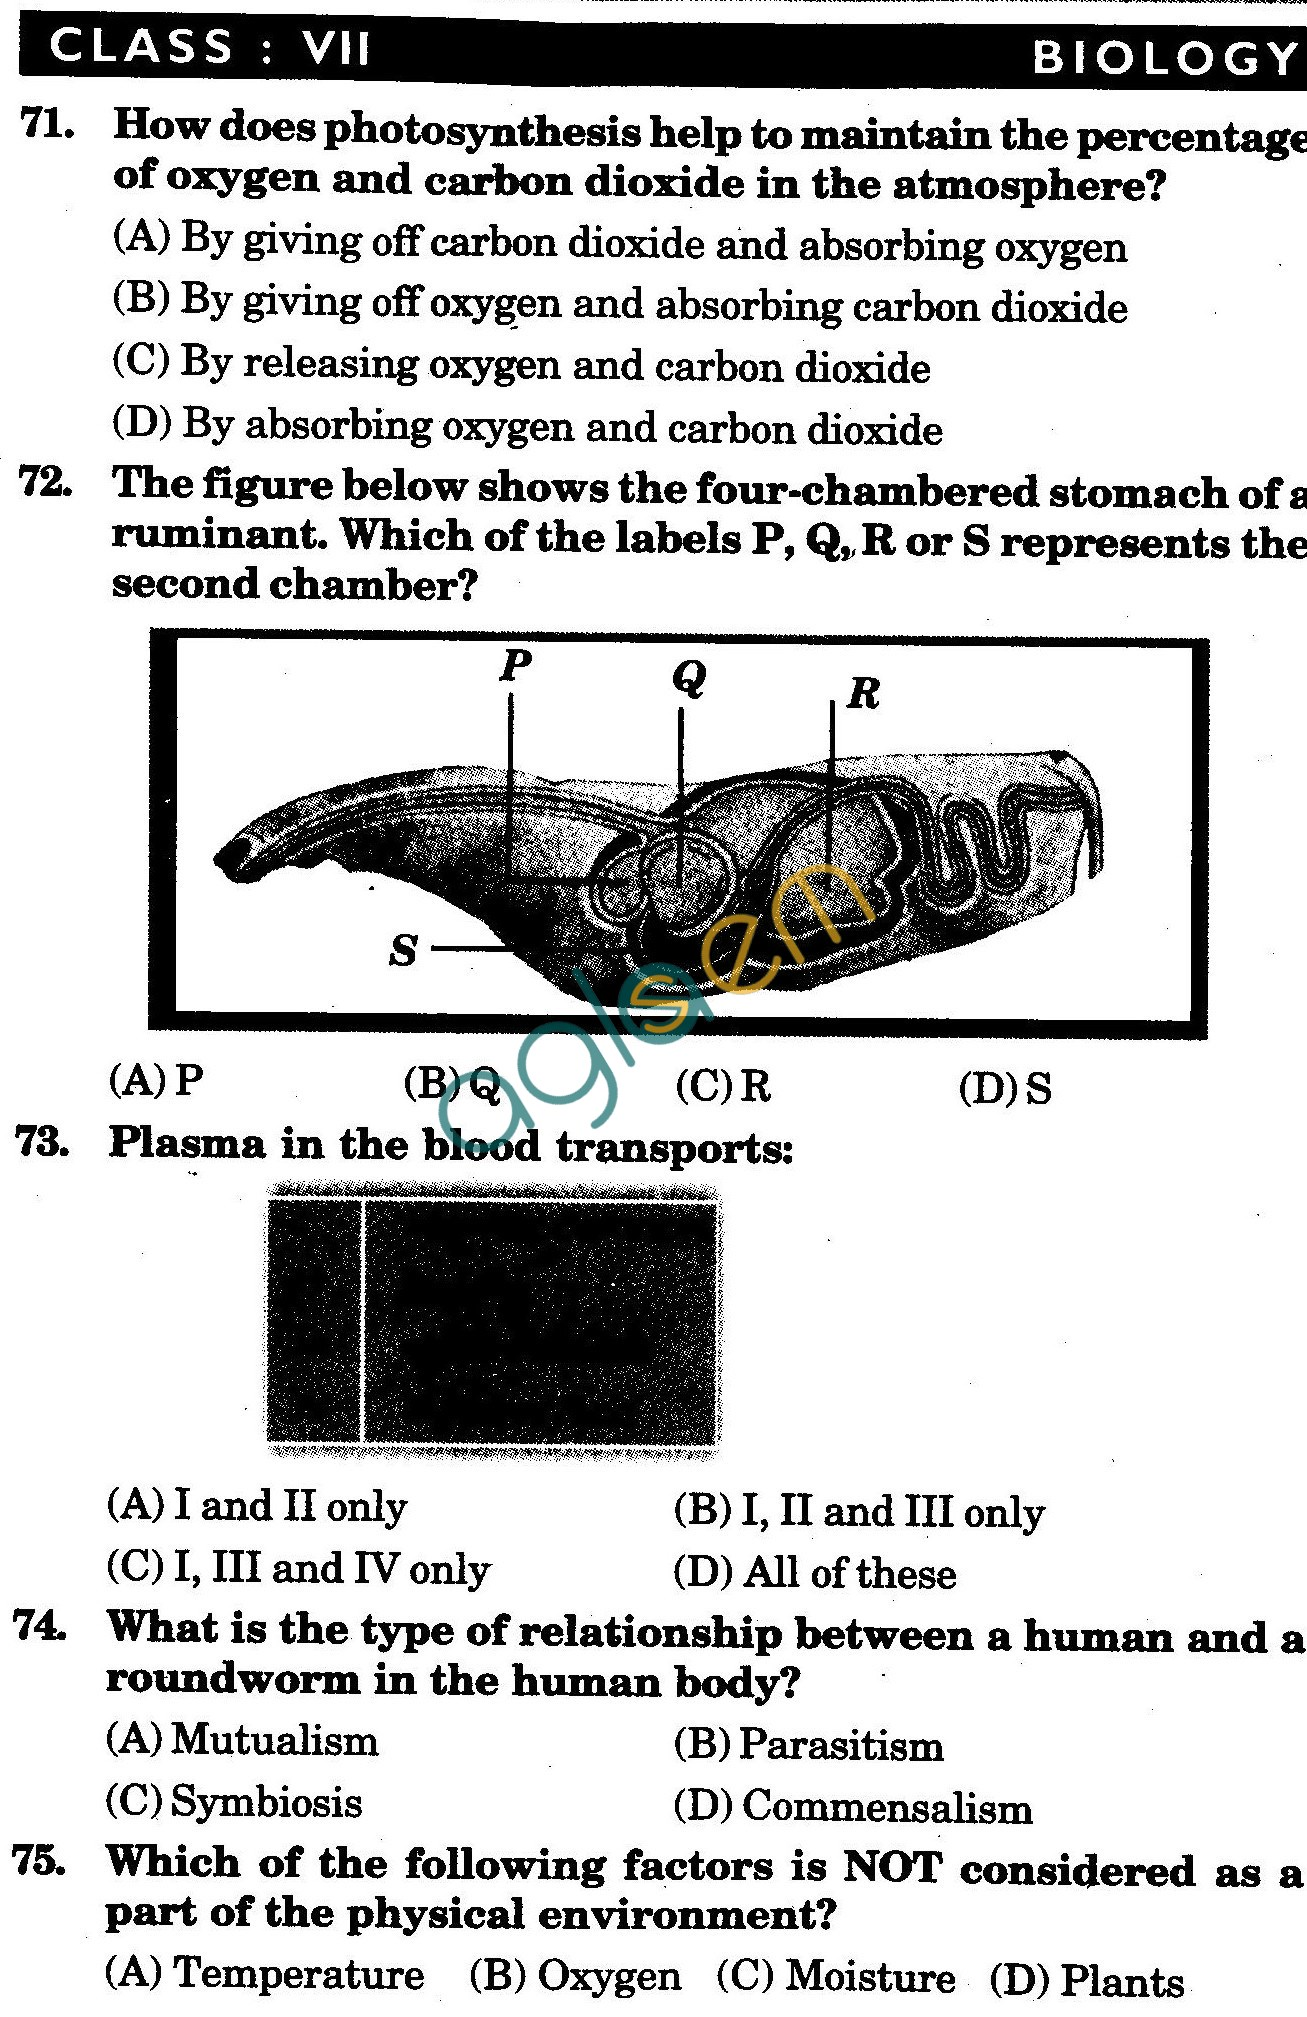 NSTSE 2009 Class VII Question Paper with Answers - Biology